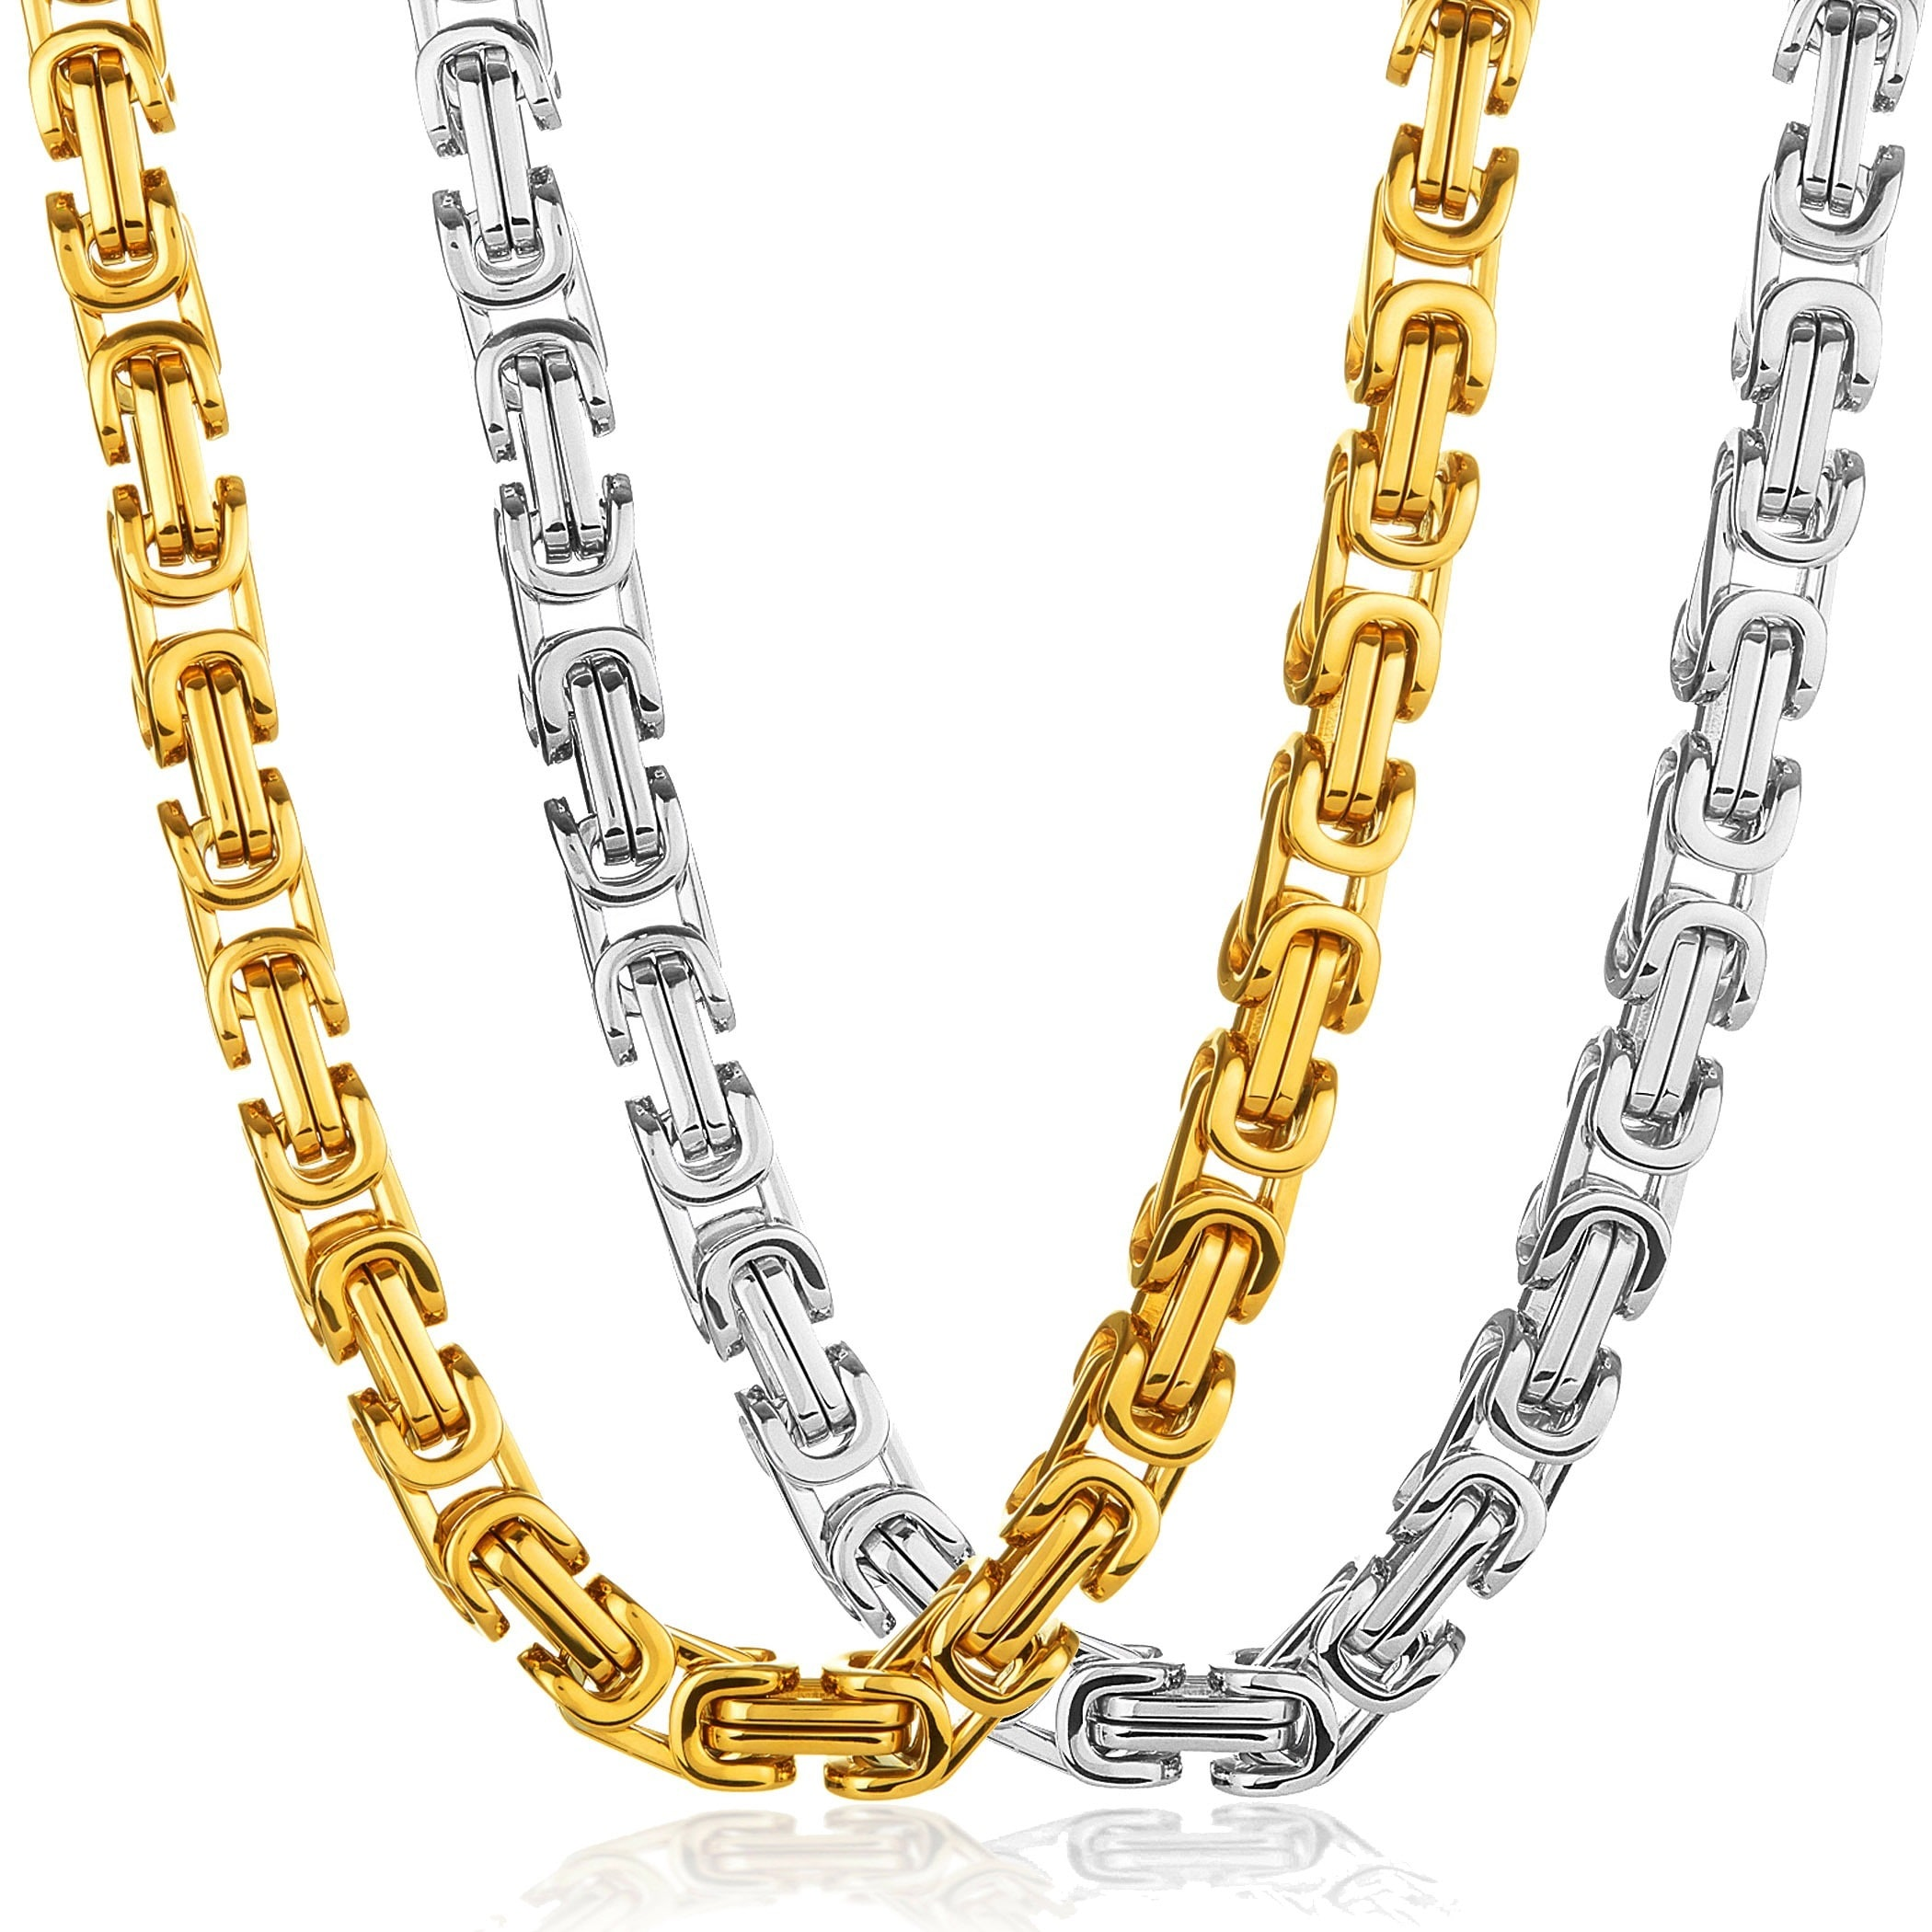 jaebee byzantine sterling silver chain necklace products